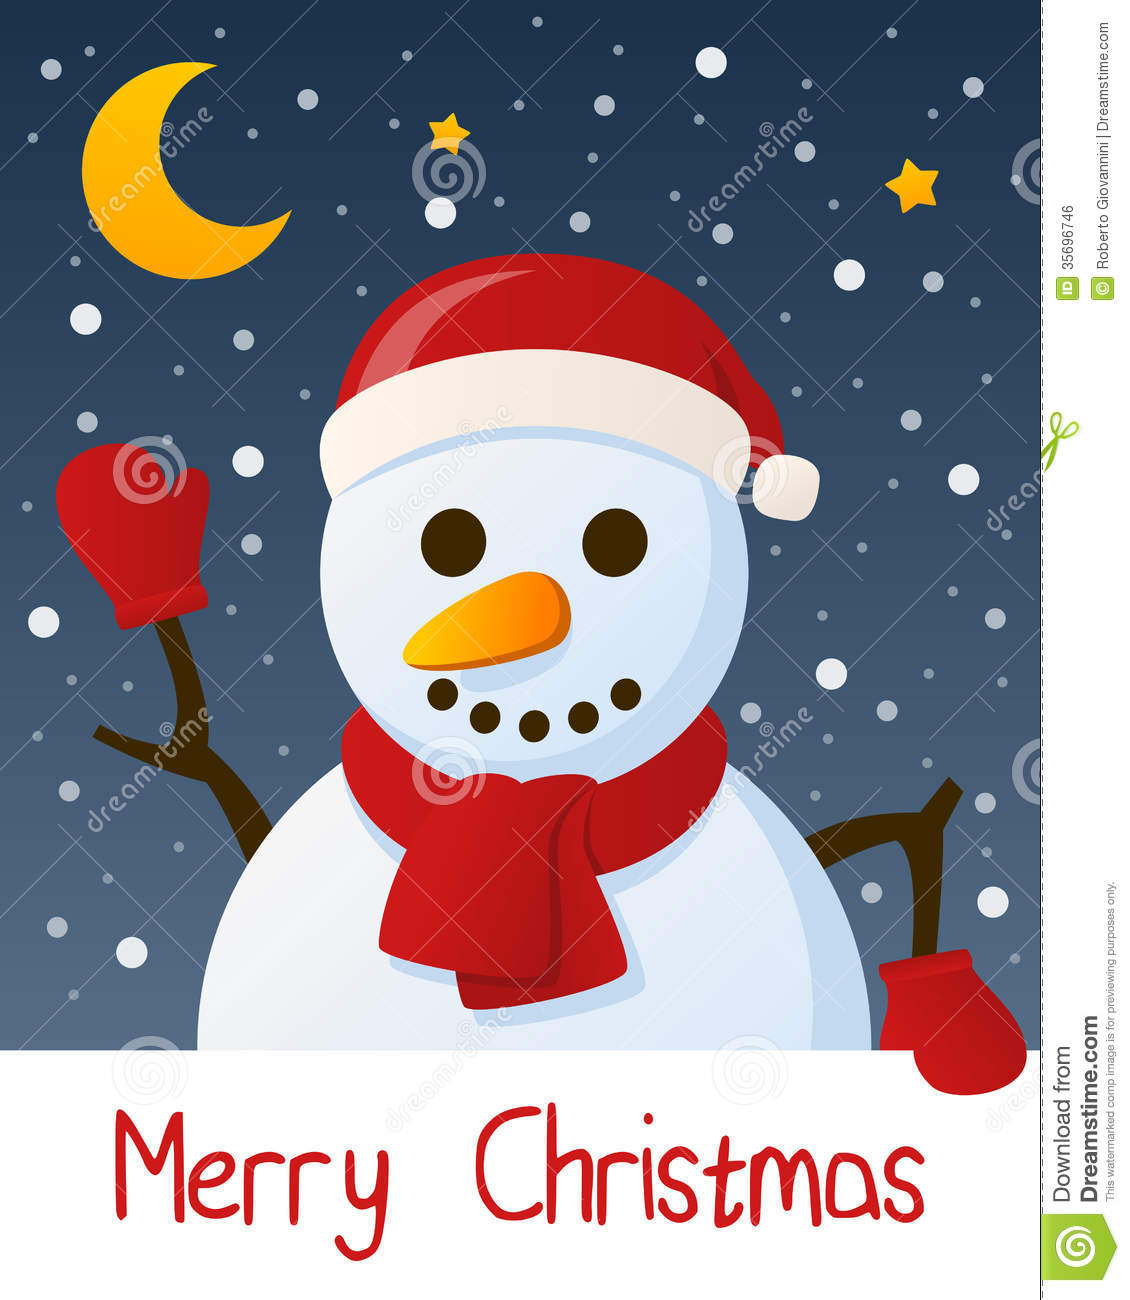 Snowman Christmas Cards Ideas.Snowman Christmas Greeting Card Stock Vector Illustration